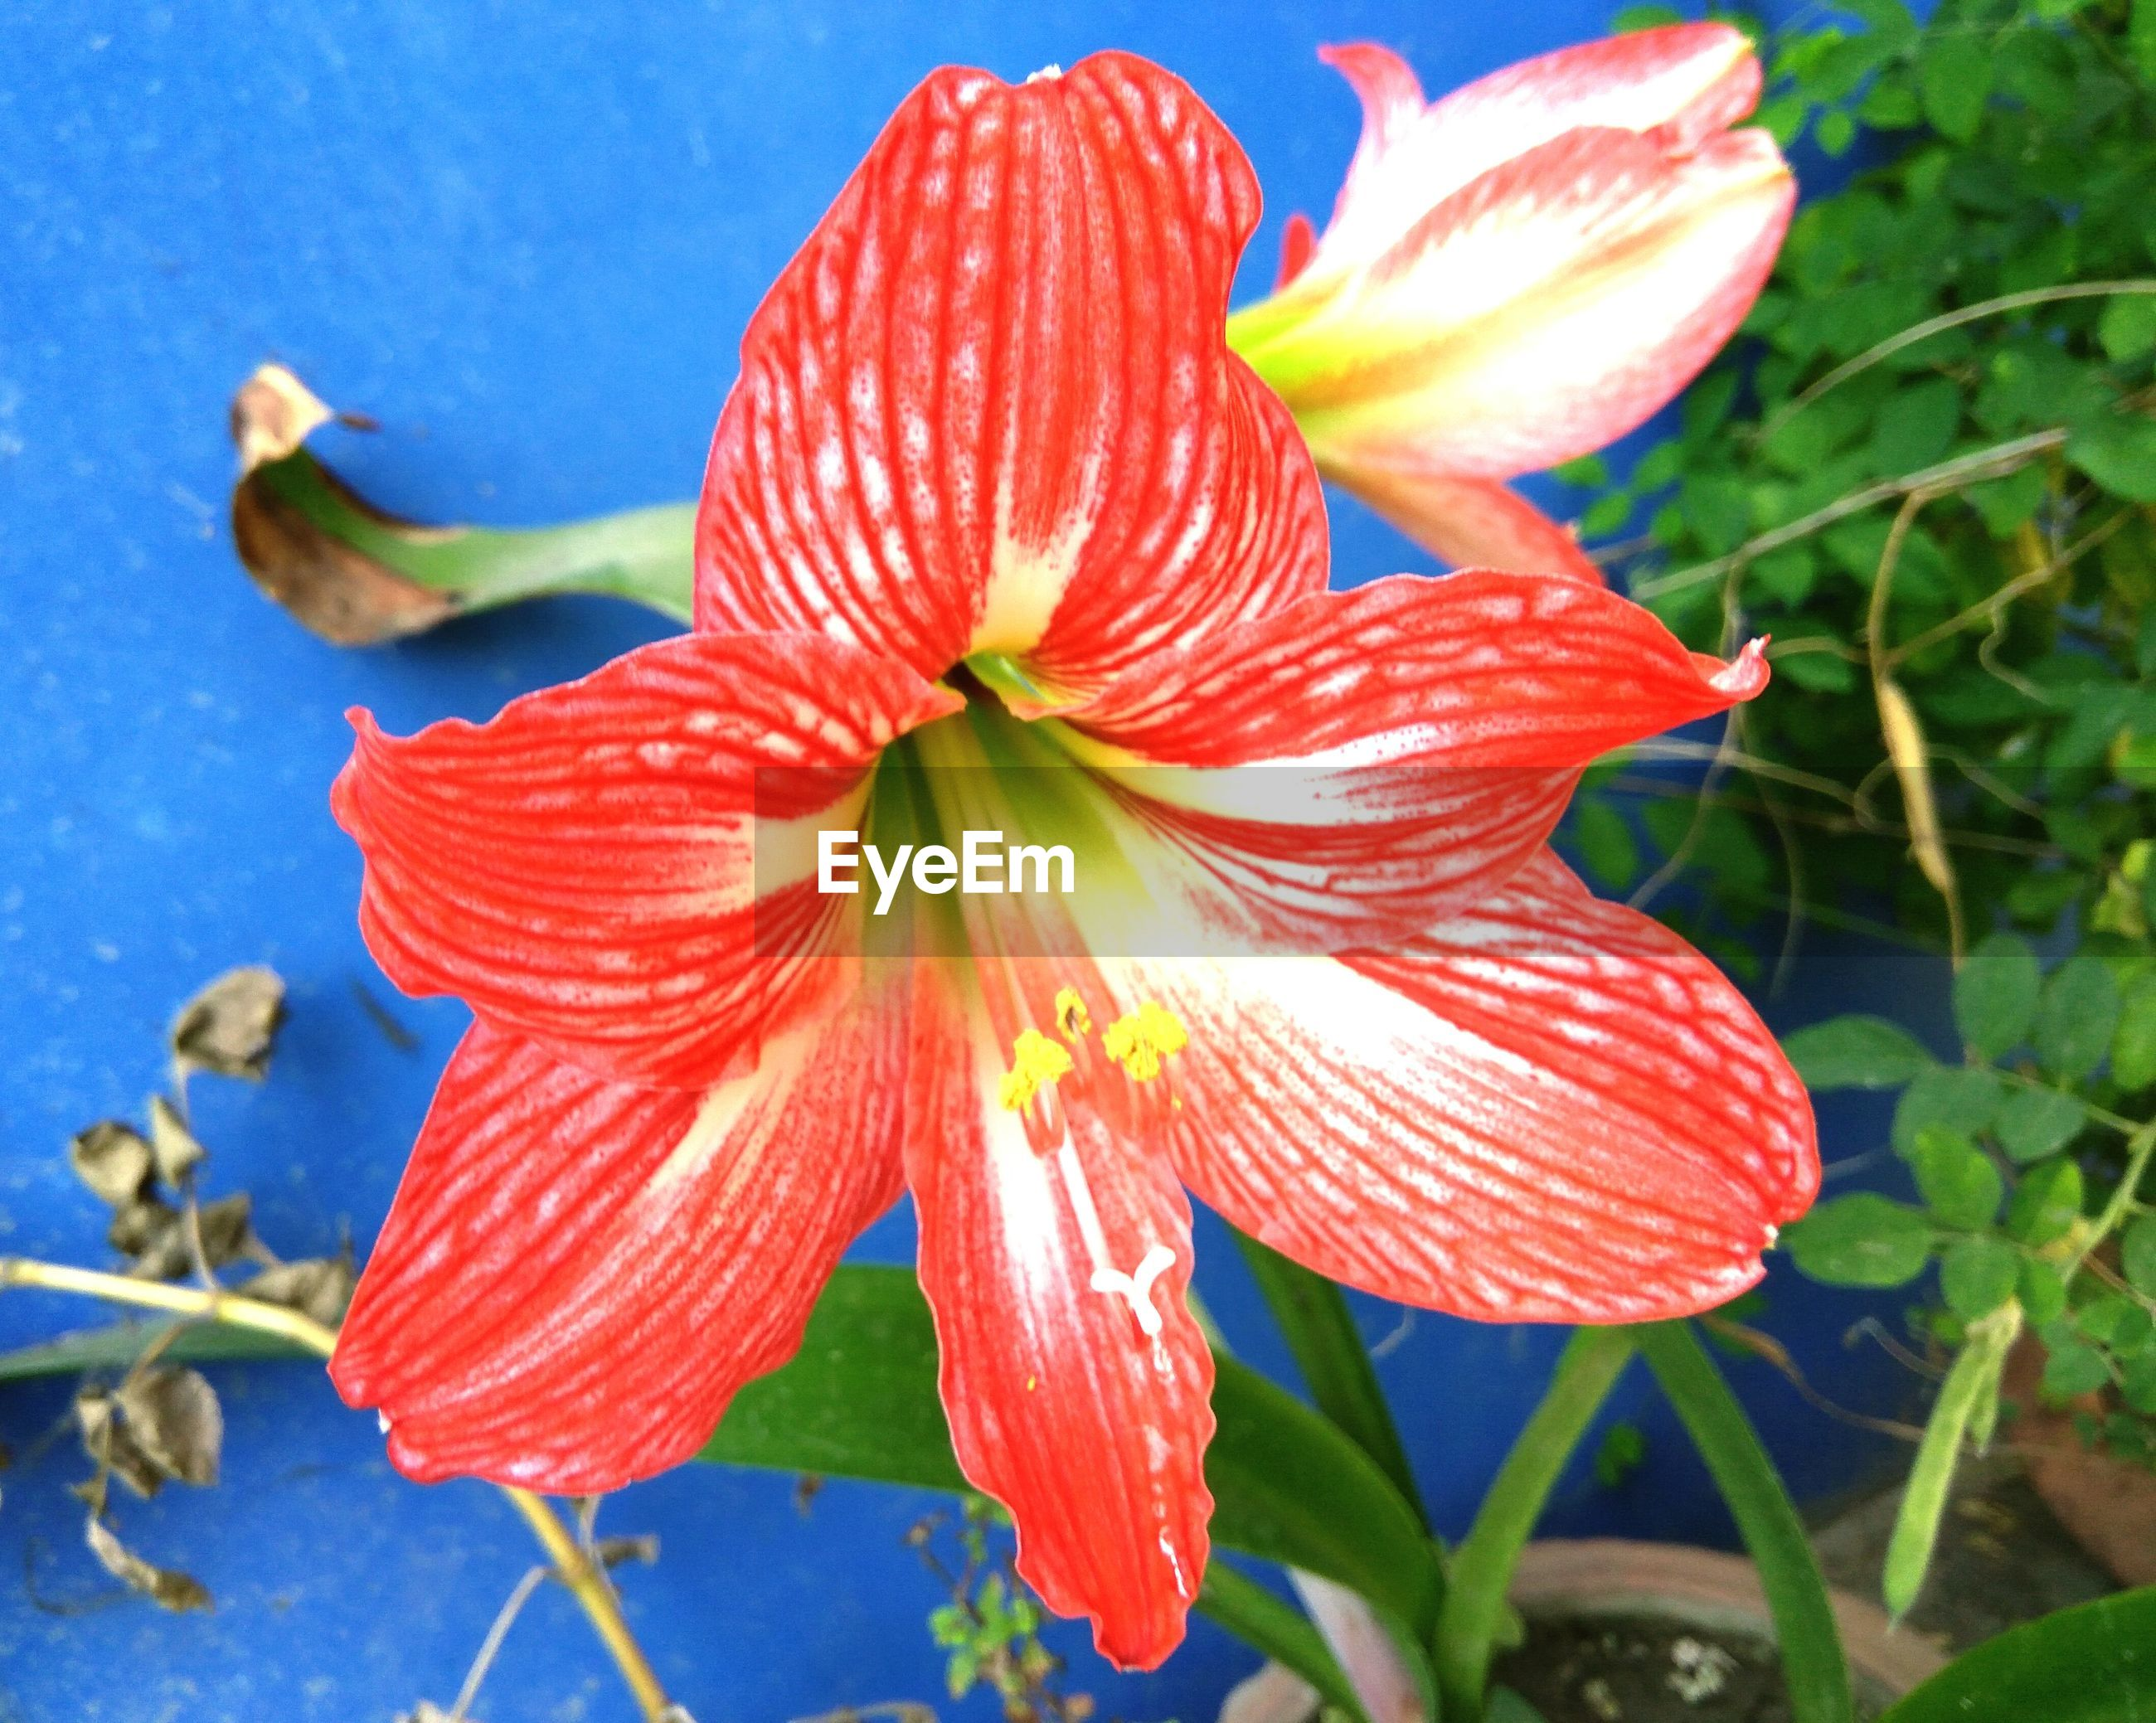 CLOSE-UP OF DAY LILY BLOOMING IN WATER